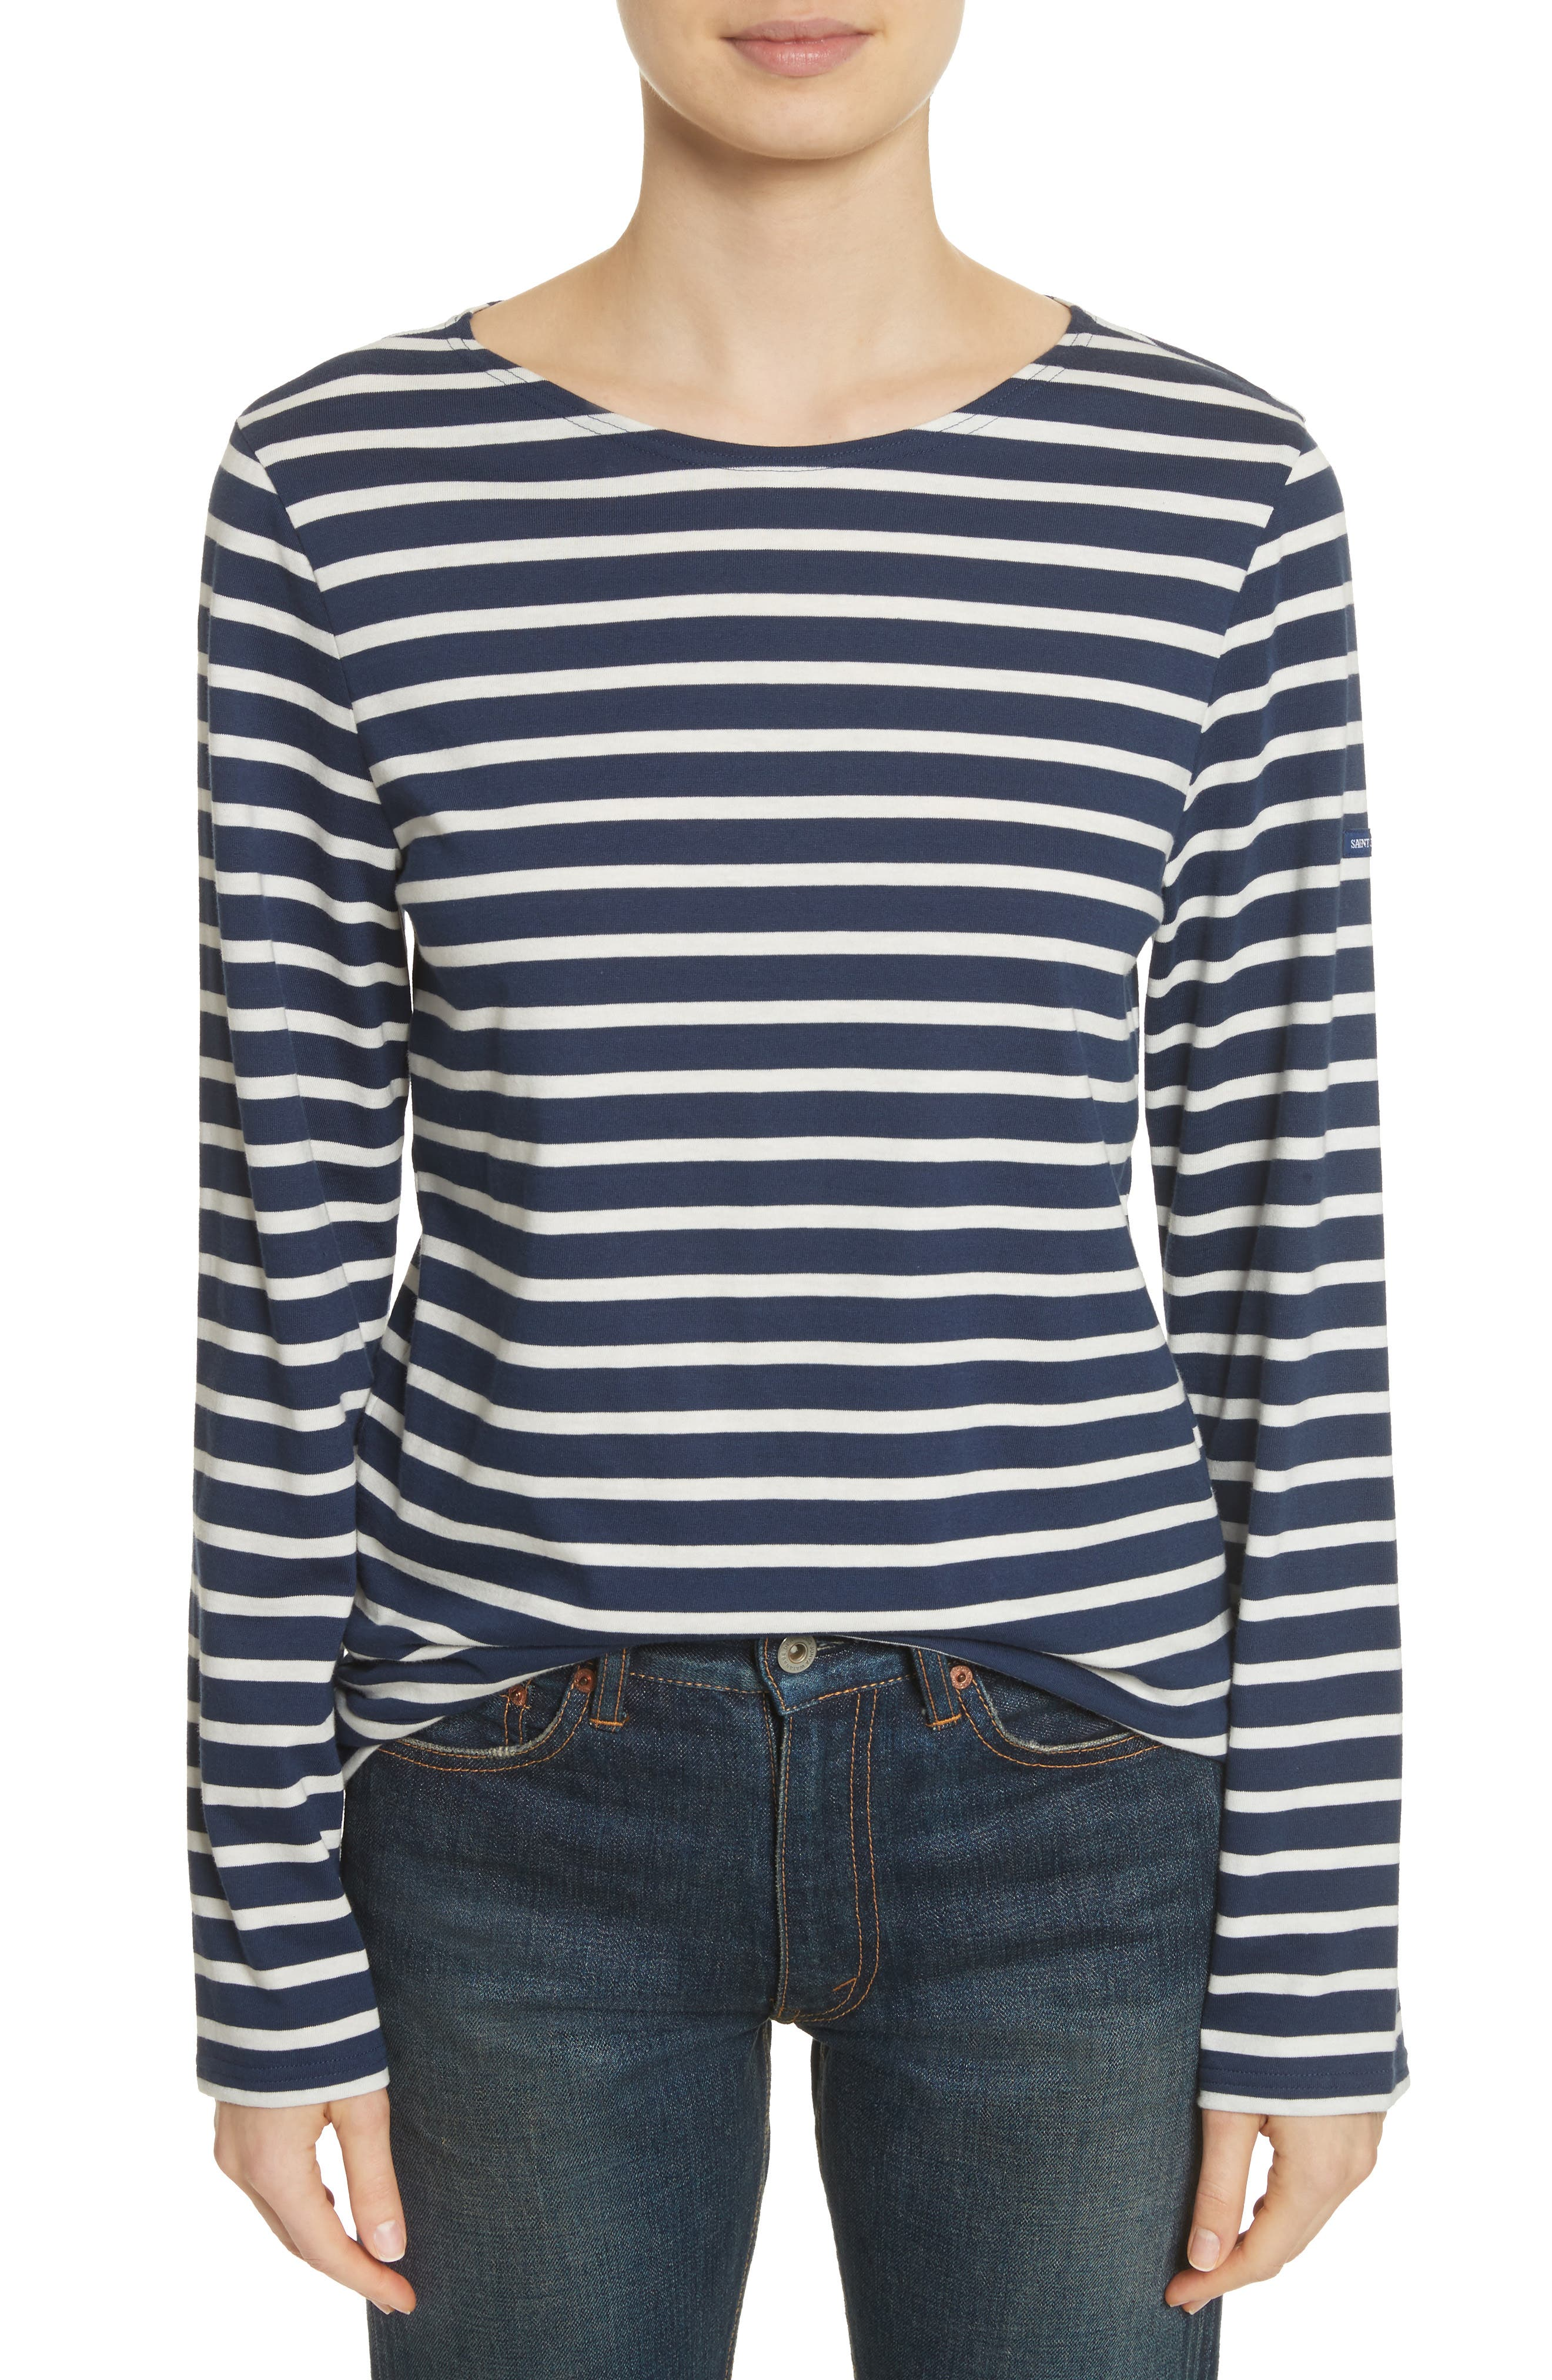 Alternate Image 2  - Saint James Minquiers Moderne Striped Sailor Shirt (Unisex)